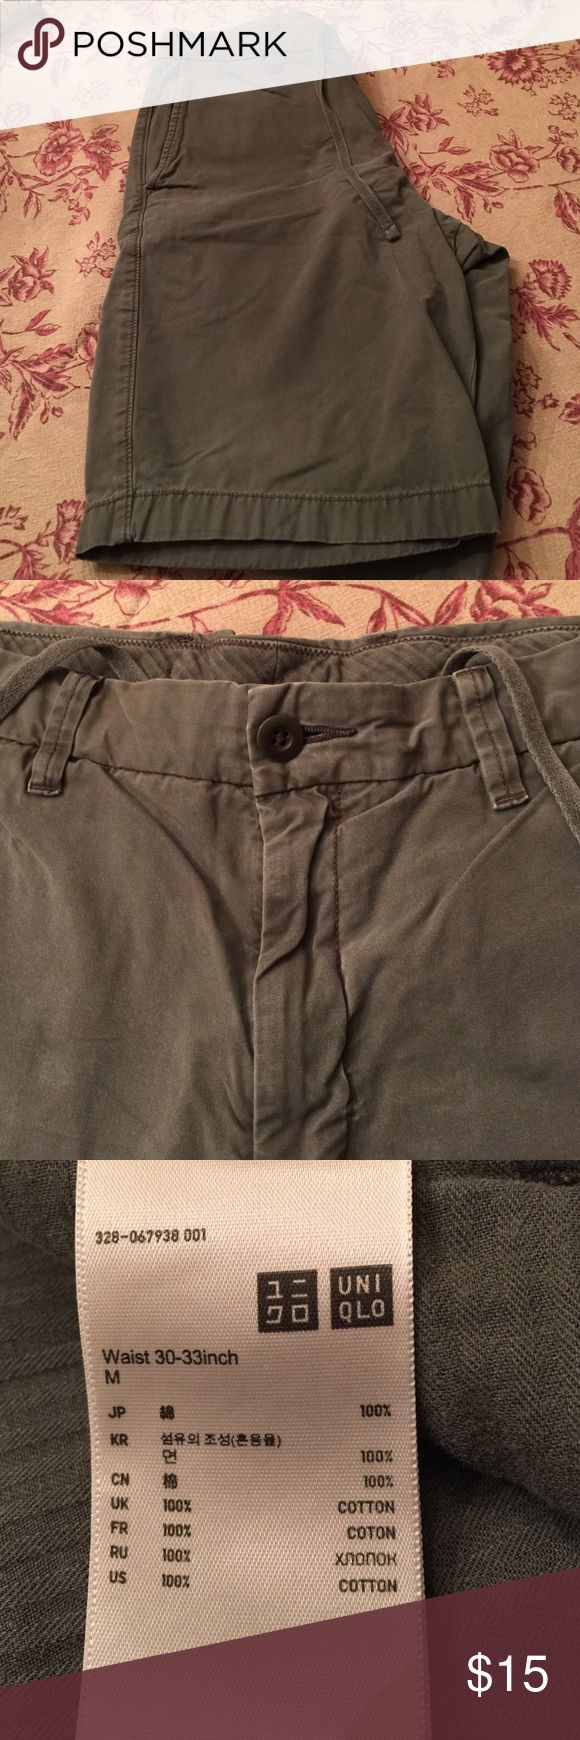 "Men's Uniqlo Shorts Olive green, size 31""-33"" gently used Uniqlo Shorts"